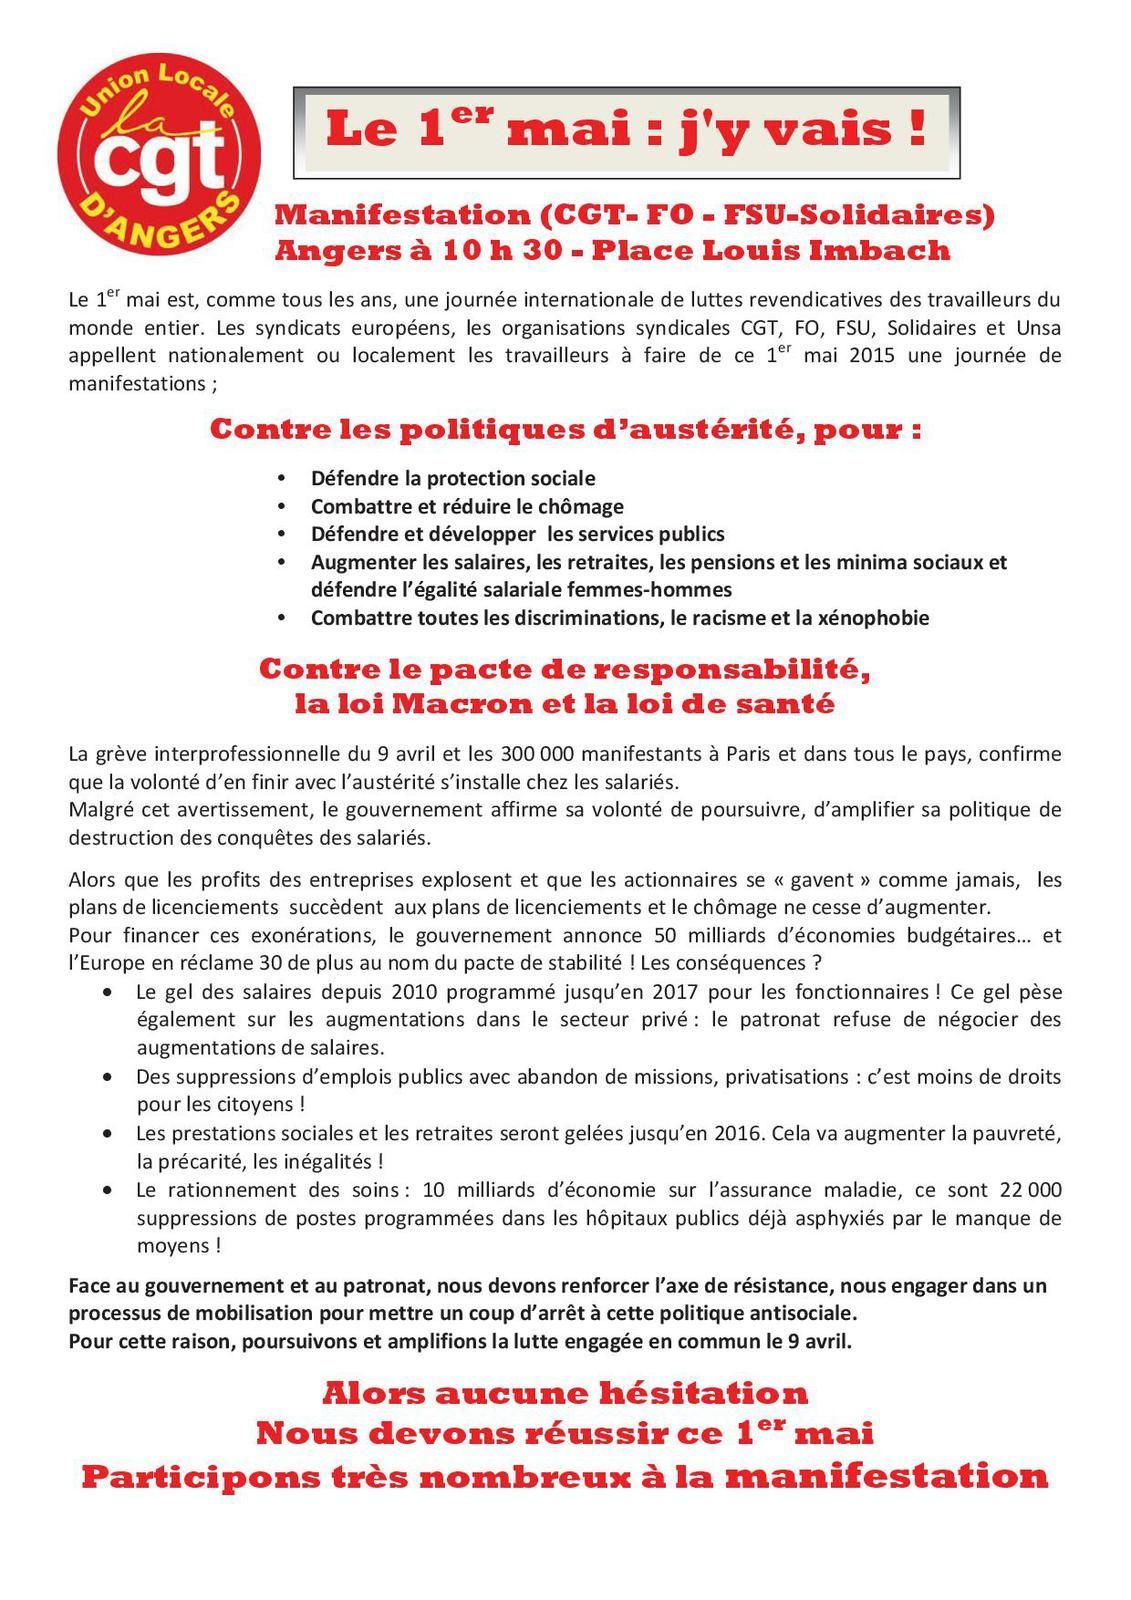 Tract Union Locale Cgt d'Angers.